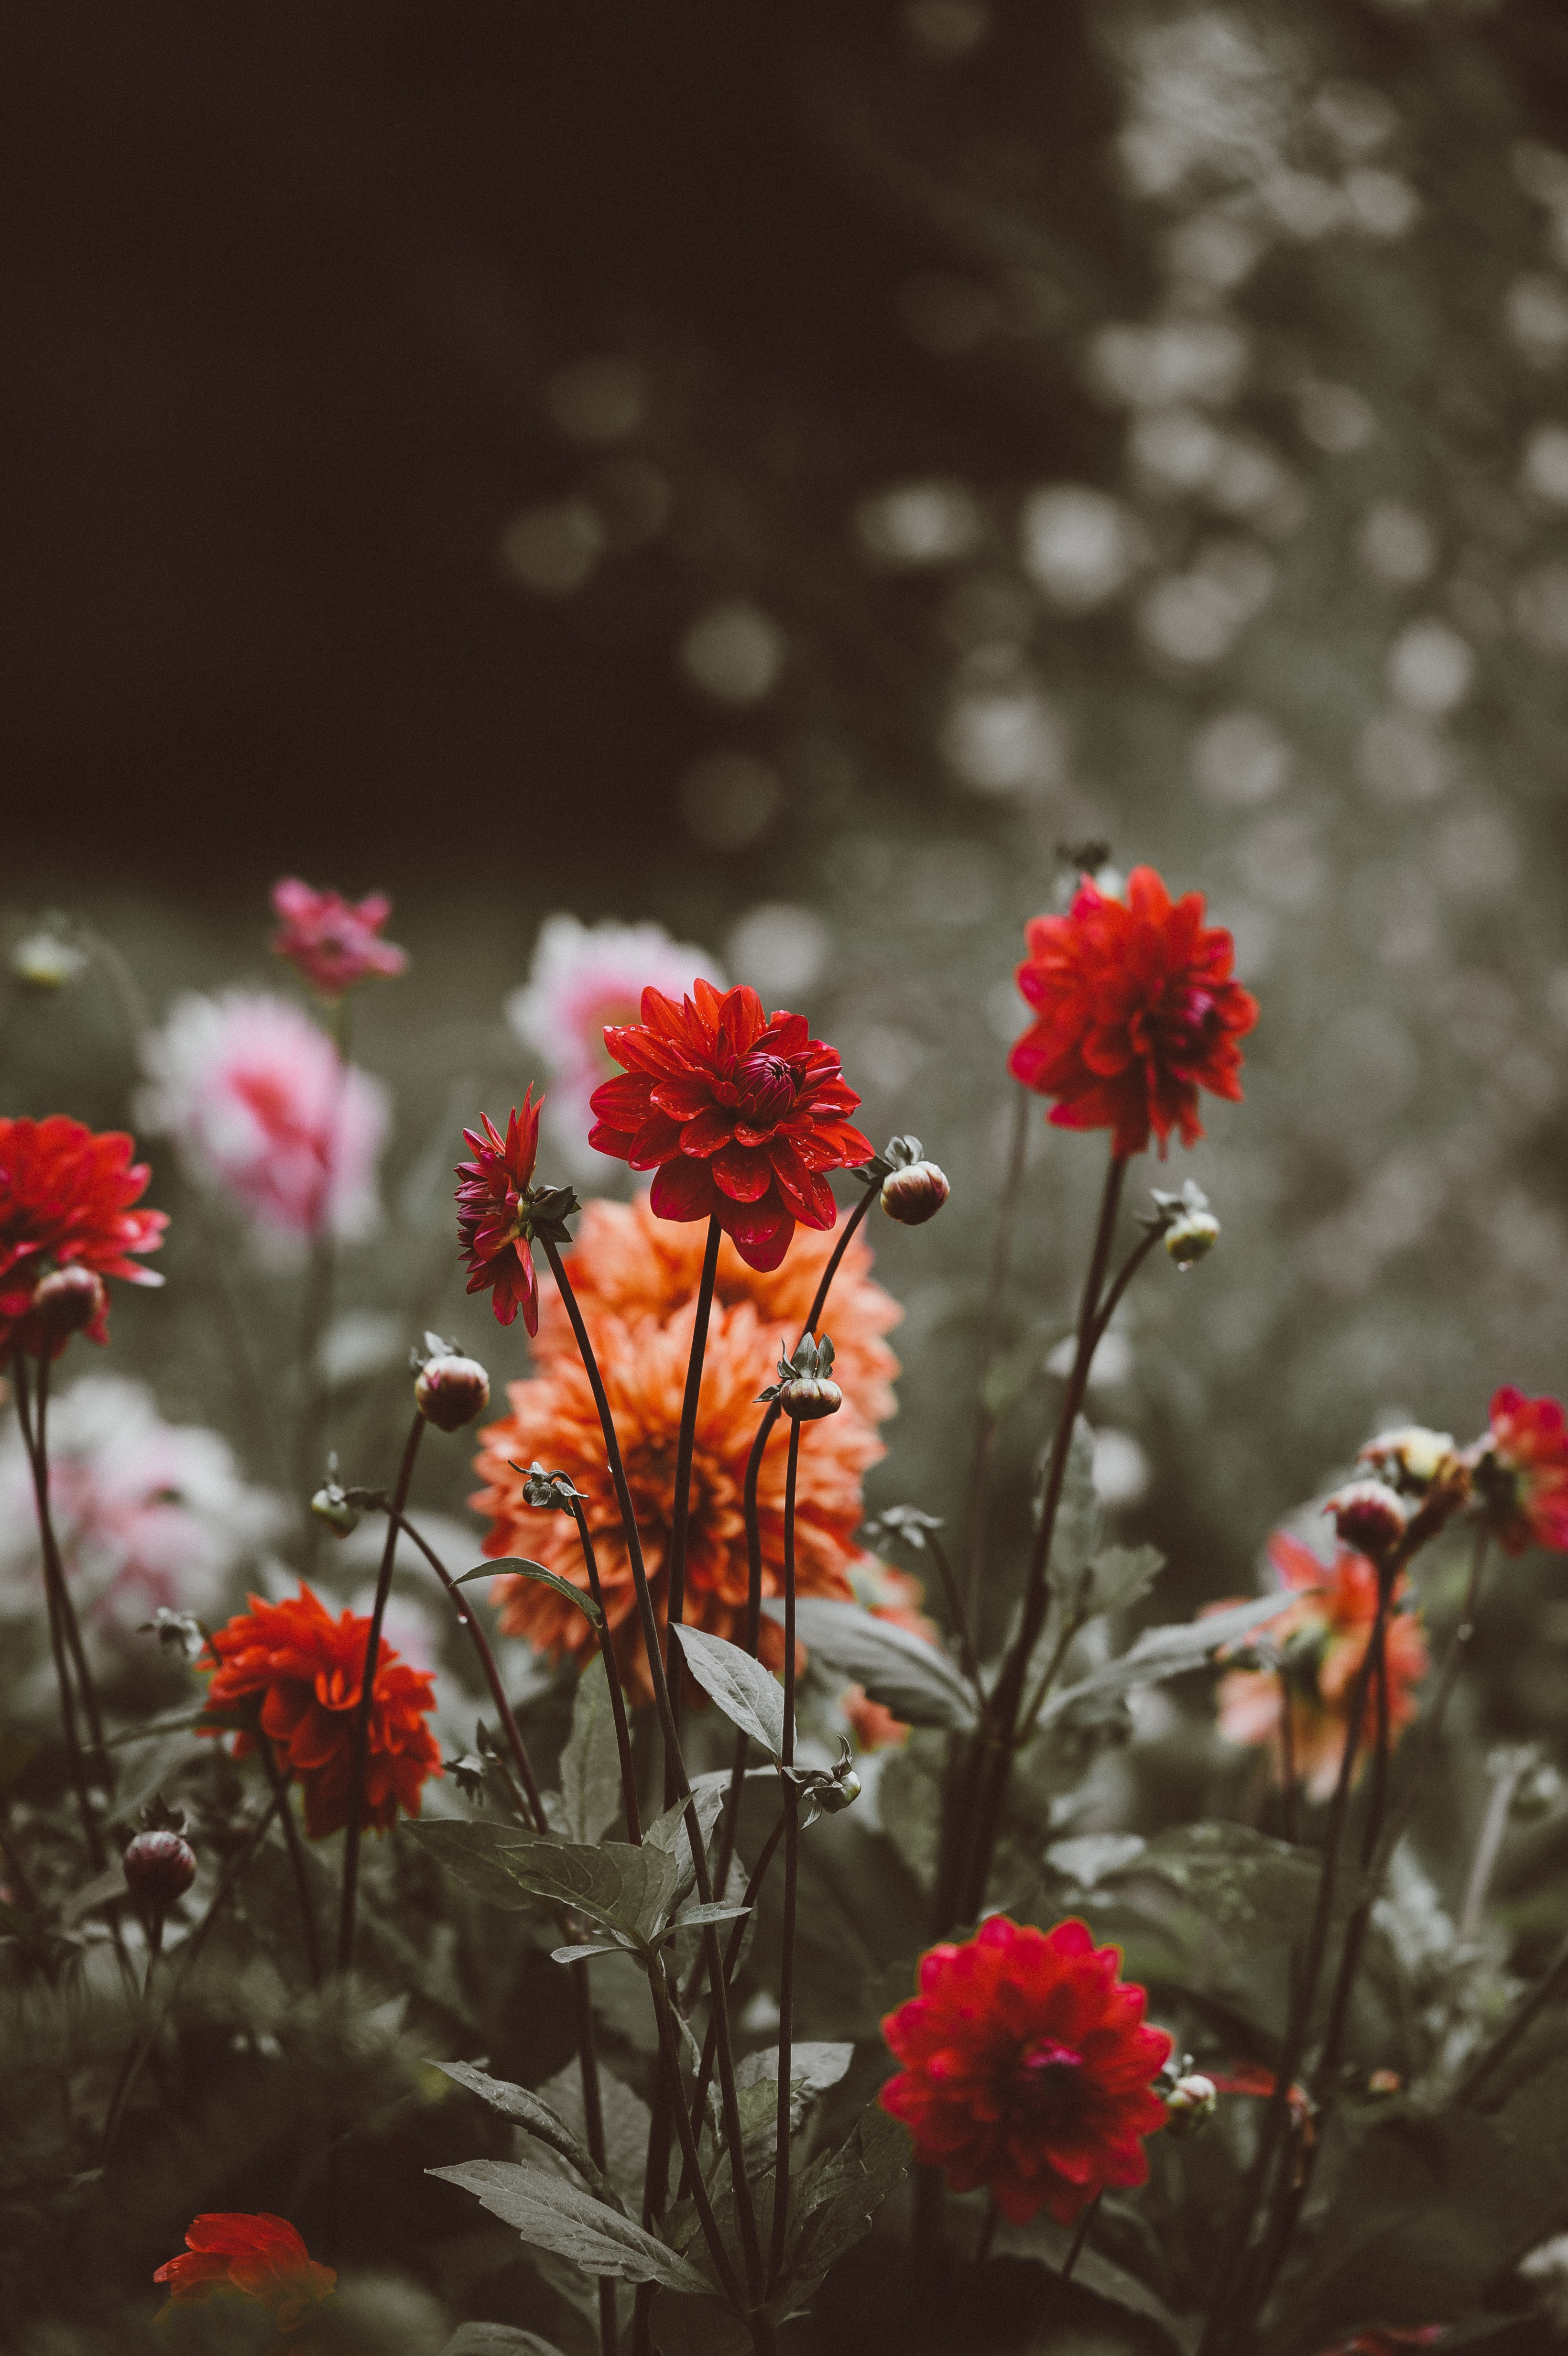 73971 Screensavers and Wallpapers Flower Bed for phone. Download Flowers, Bloom, Flowering, Flower Bed, Flowerbed, Dahlias, Buds pictures for free